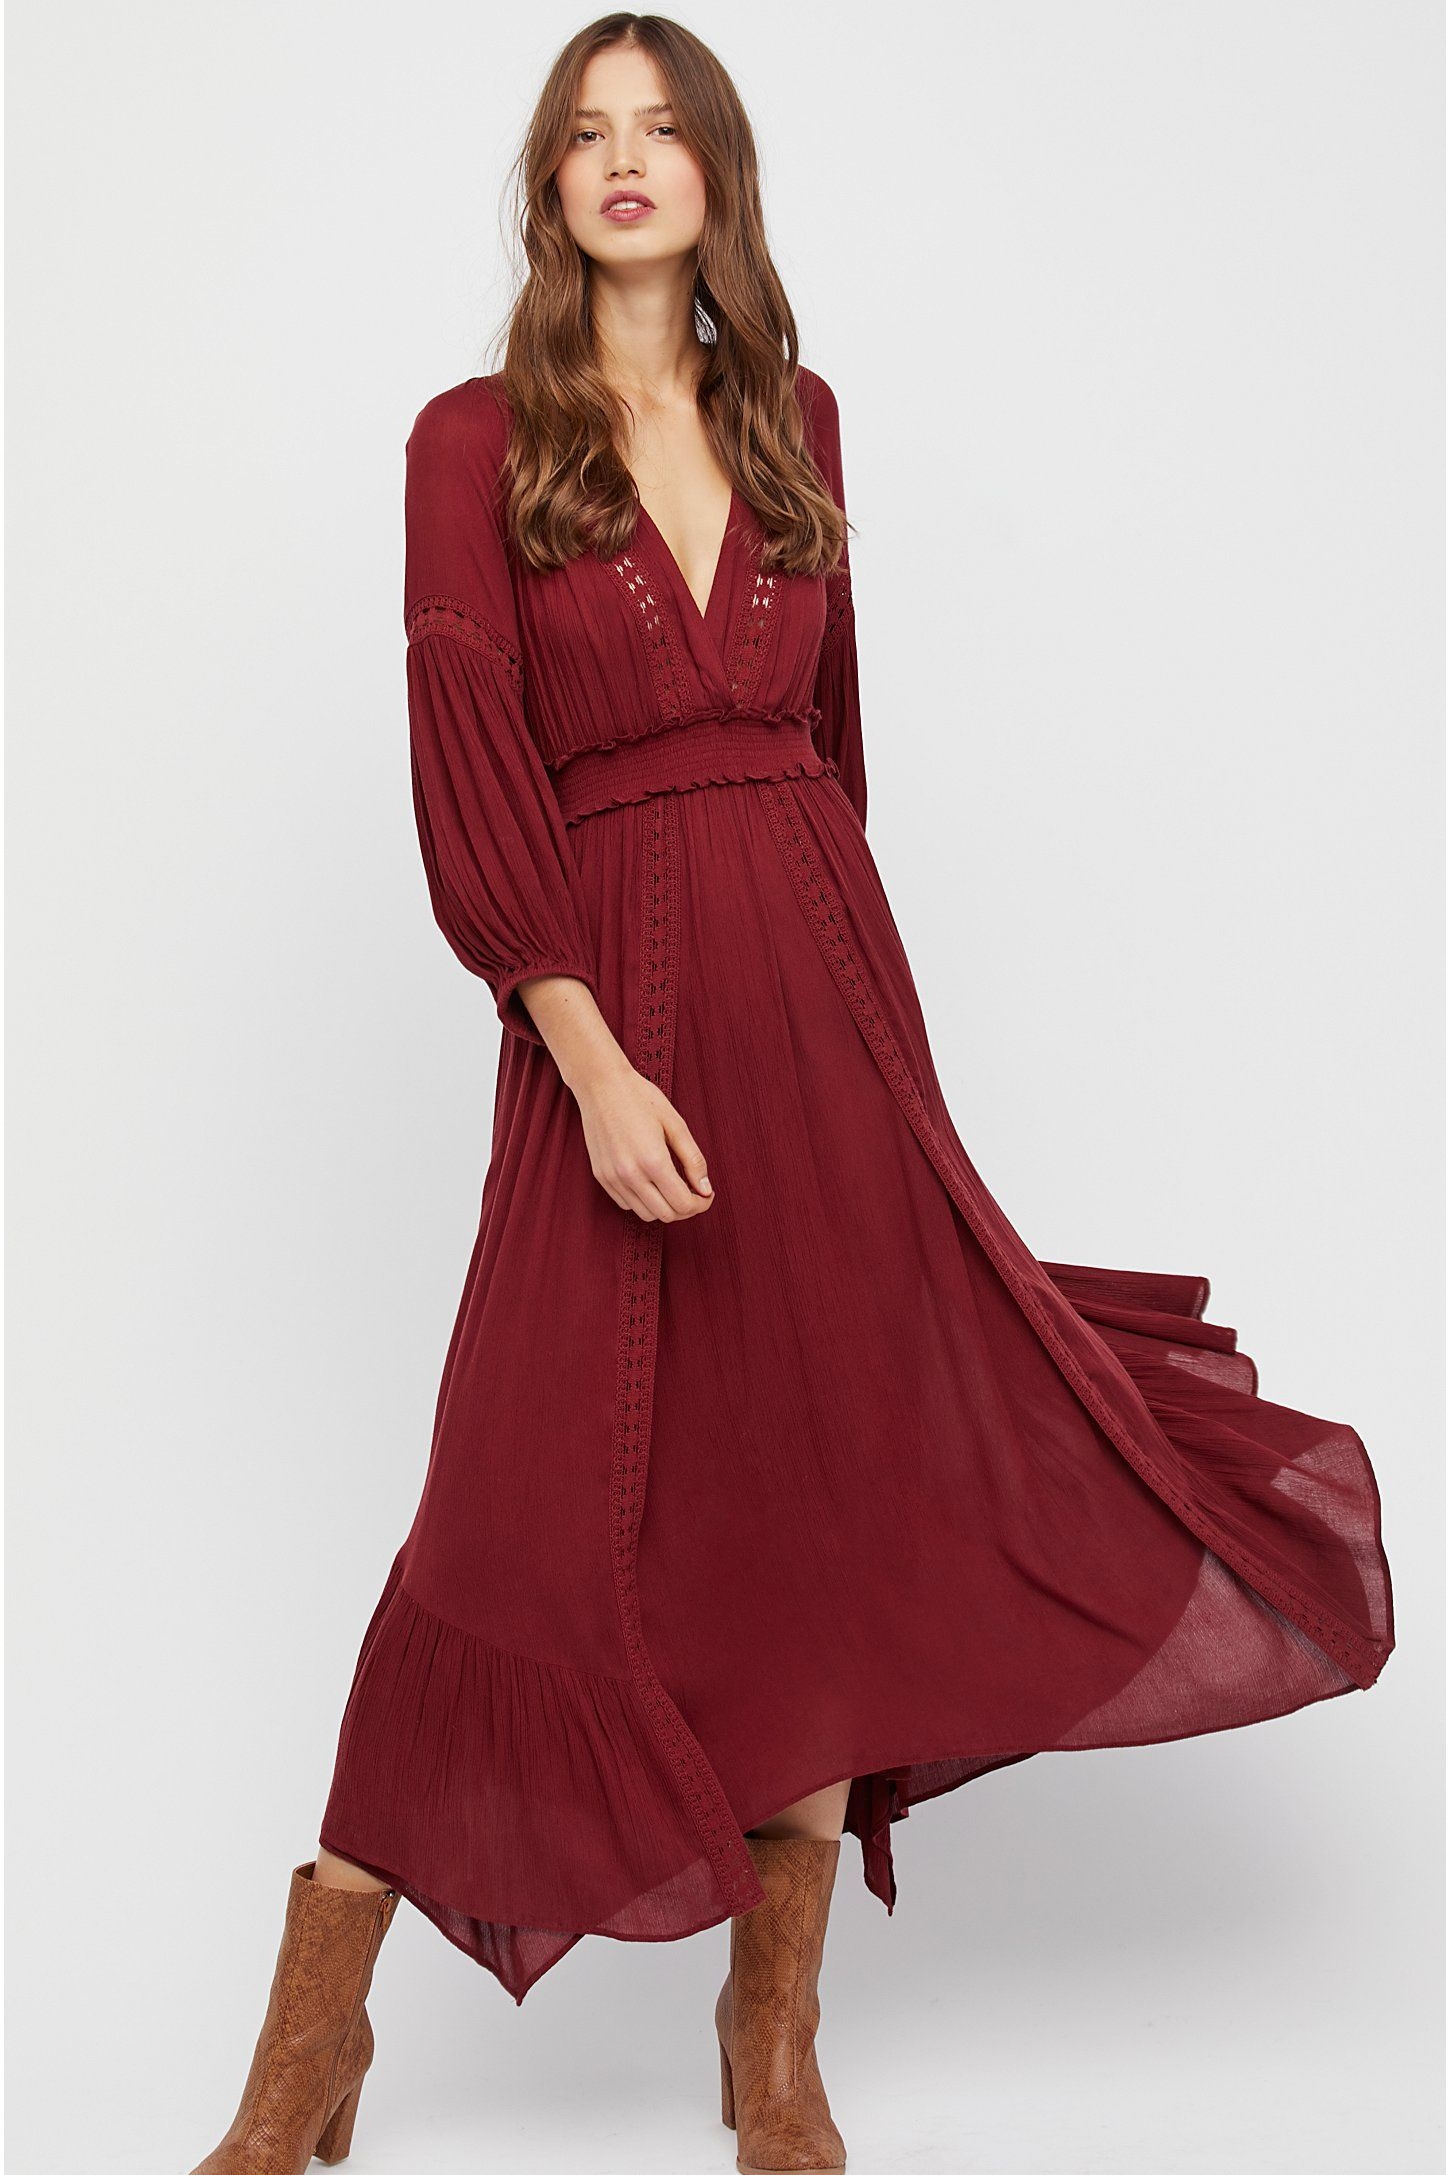 f342de9313 Shop our Marysia Maxi Dress at FreePeople.com. Share style pics with ...